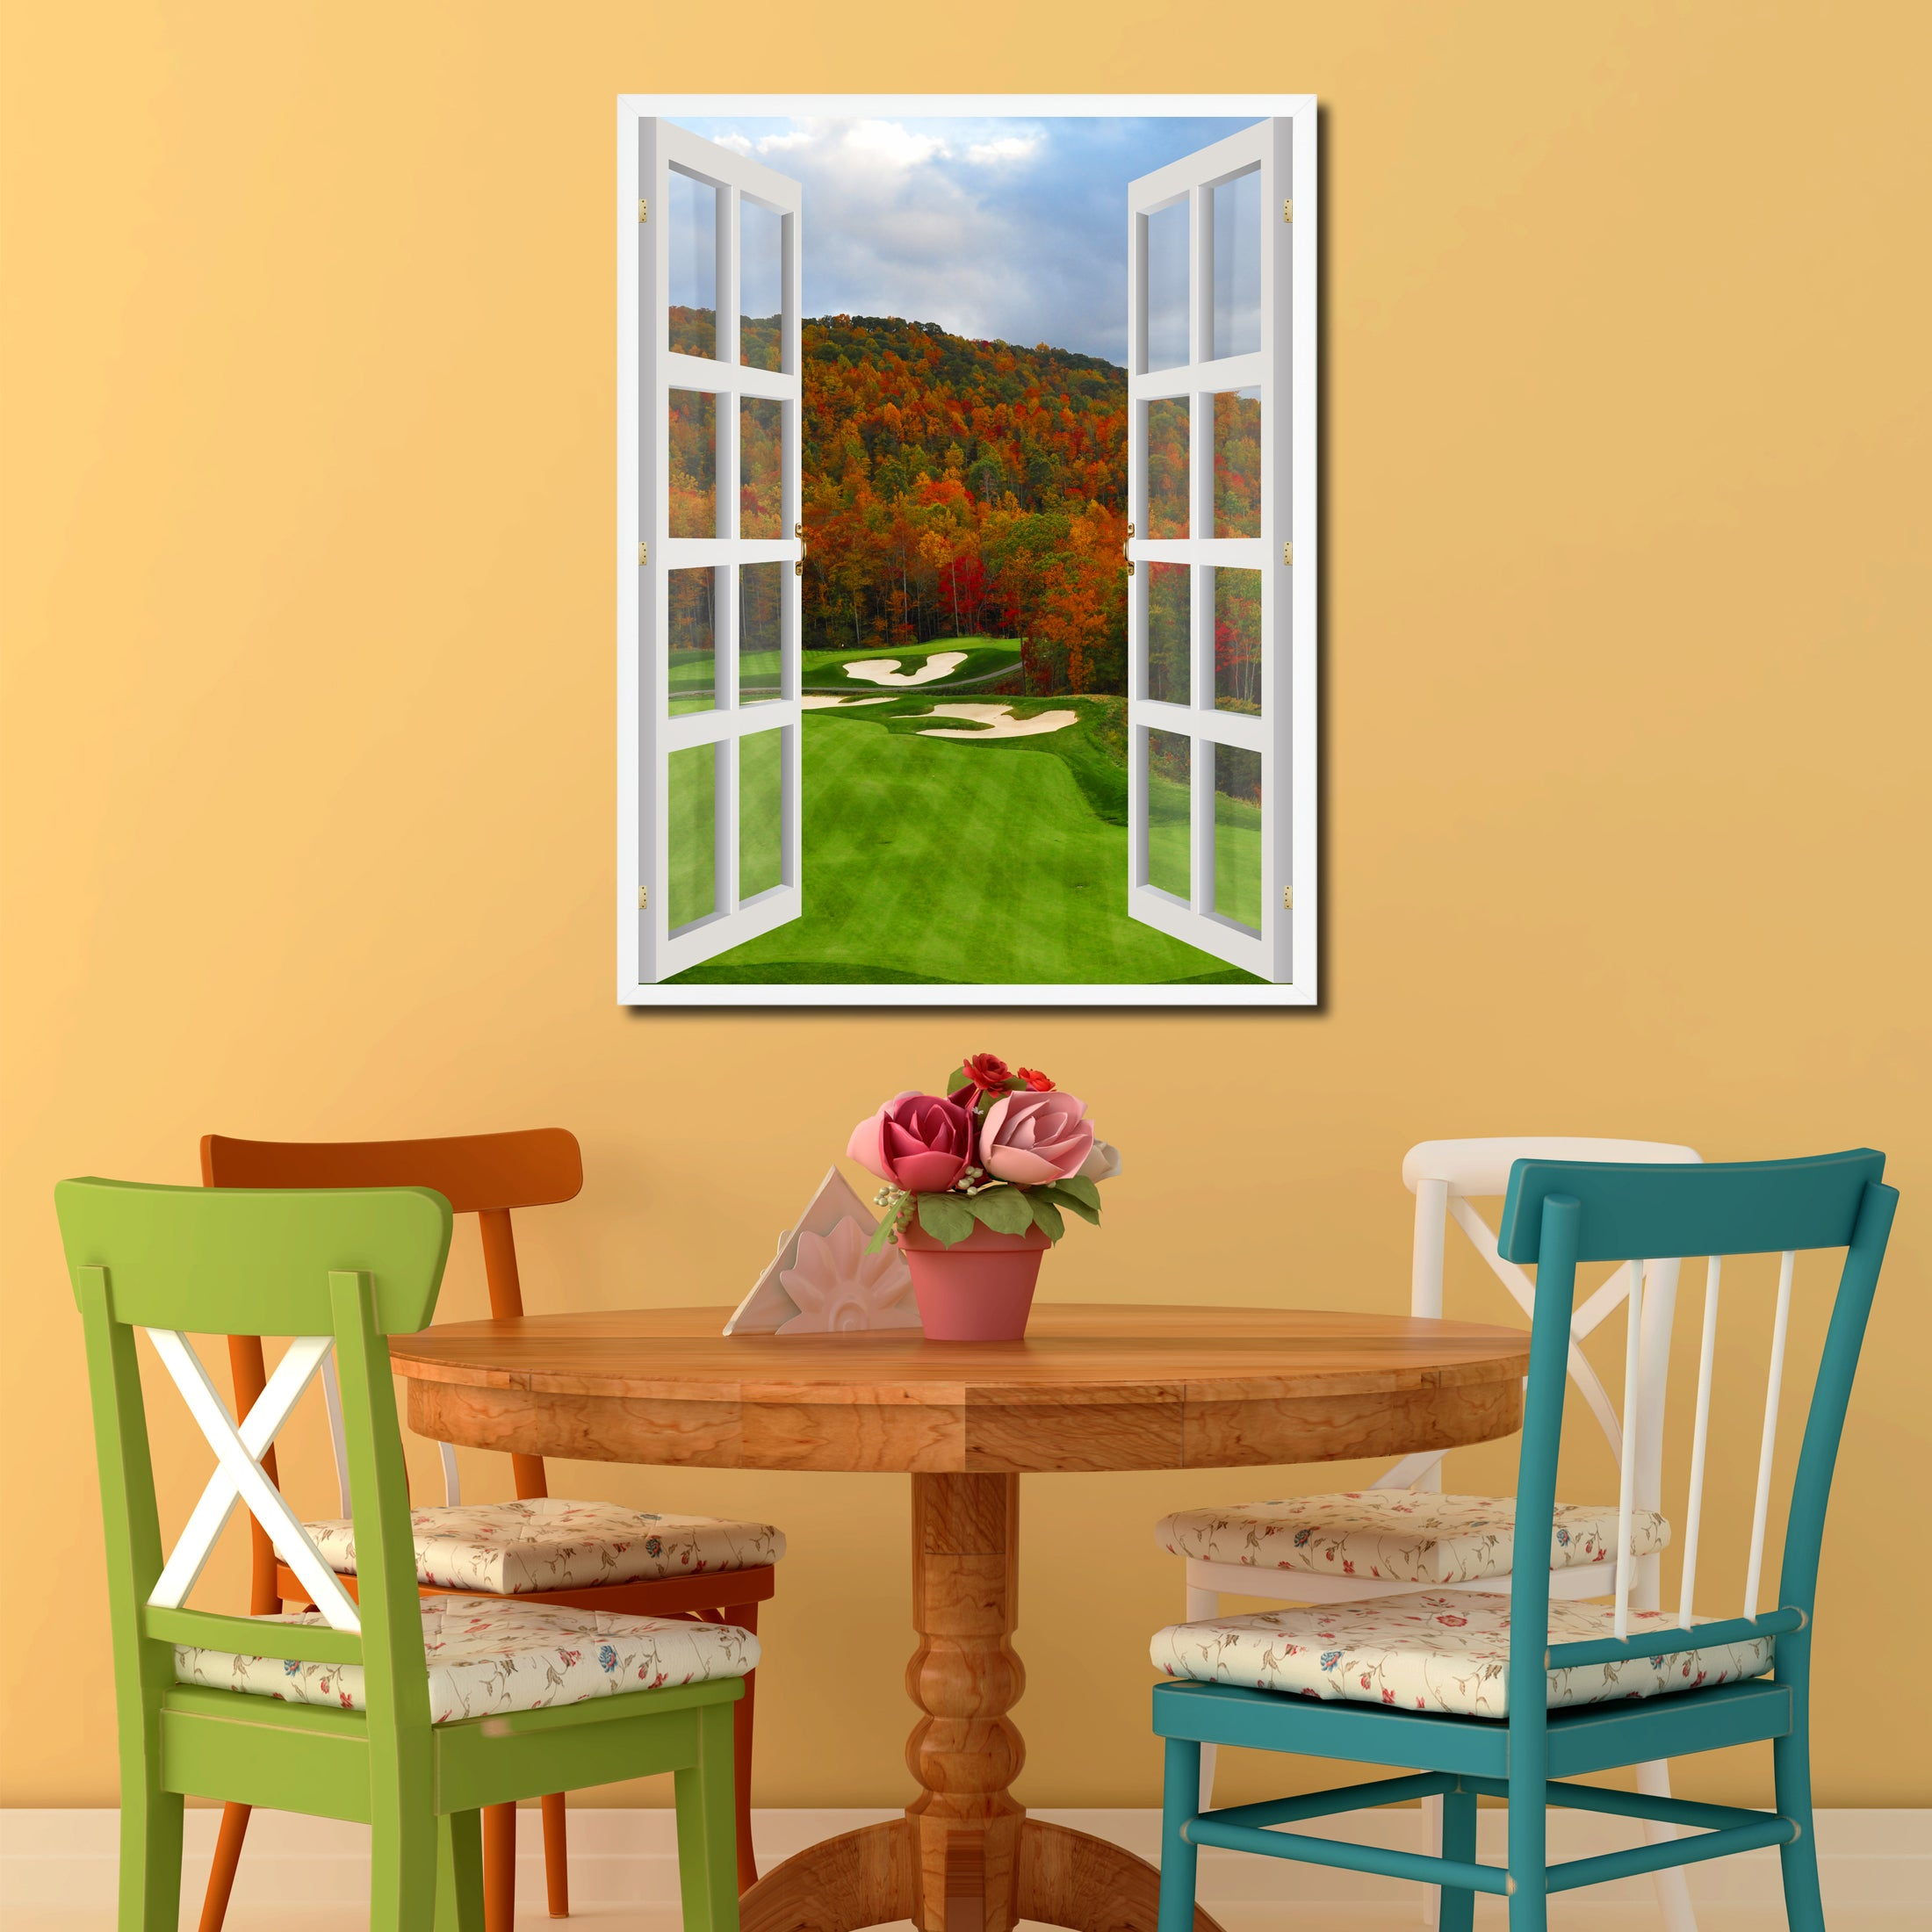 North Carolina Golf Course Autumn View Picture French Window Canvas Print with Frame Gifts Home Decor Wall Art Collection